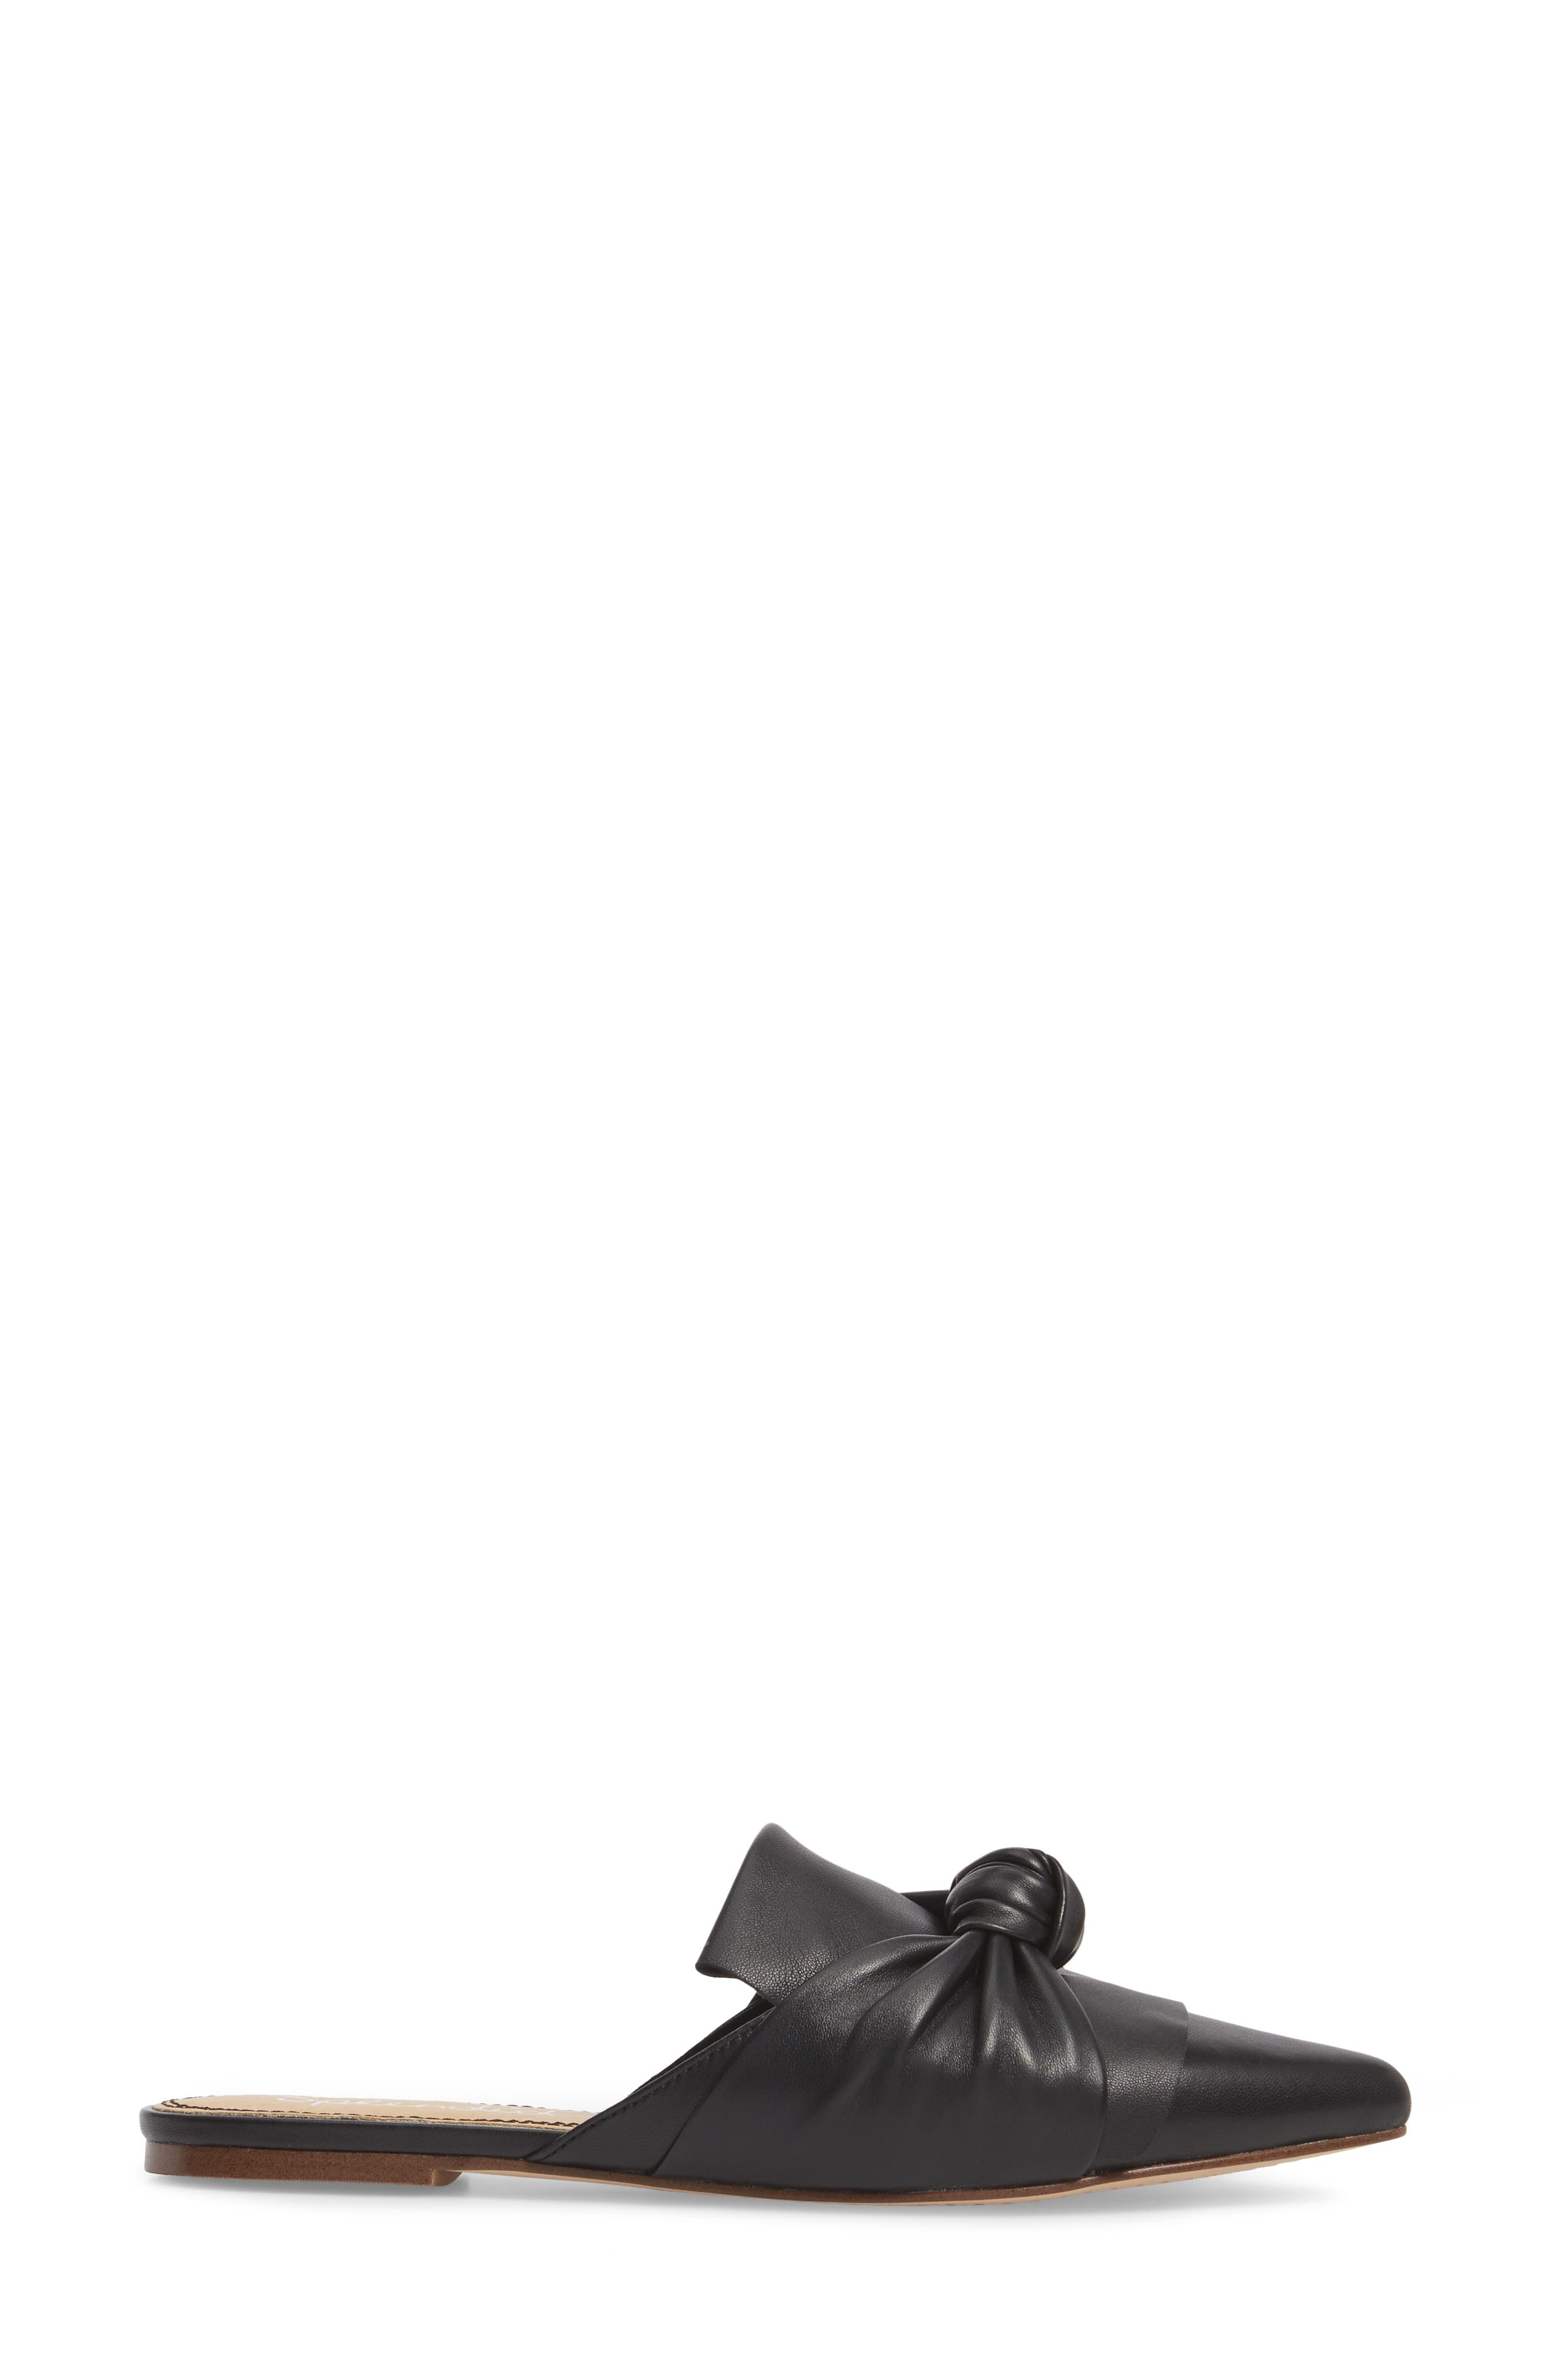 Bassett Knotted Pointy Toe Mule,                             Alternate thumbnail 3, color,                             Black Leather